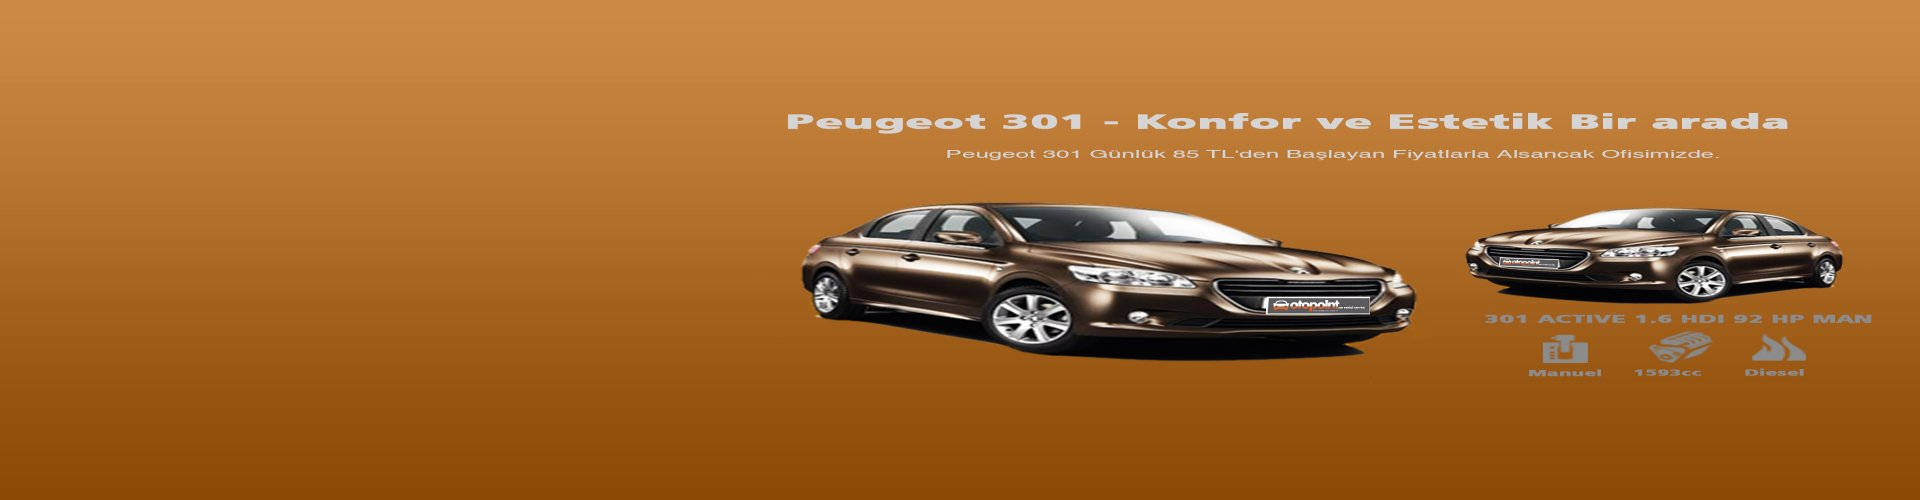 h_rent_a_car_izmir_slider_peugeot_301.jpg